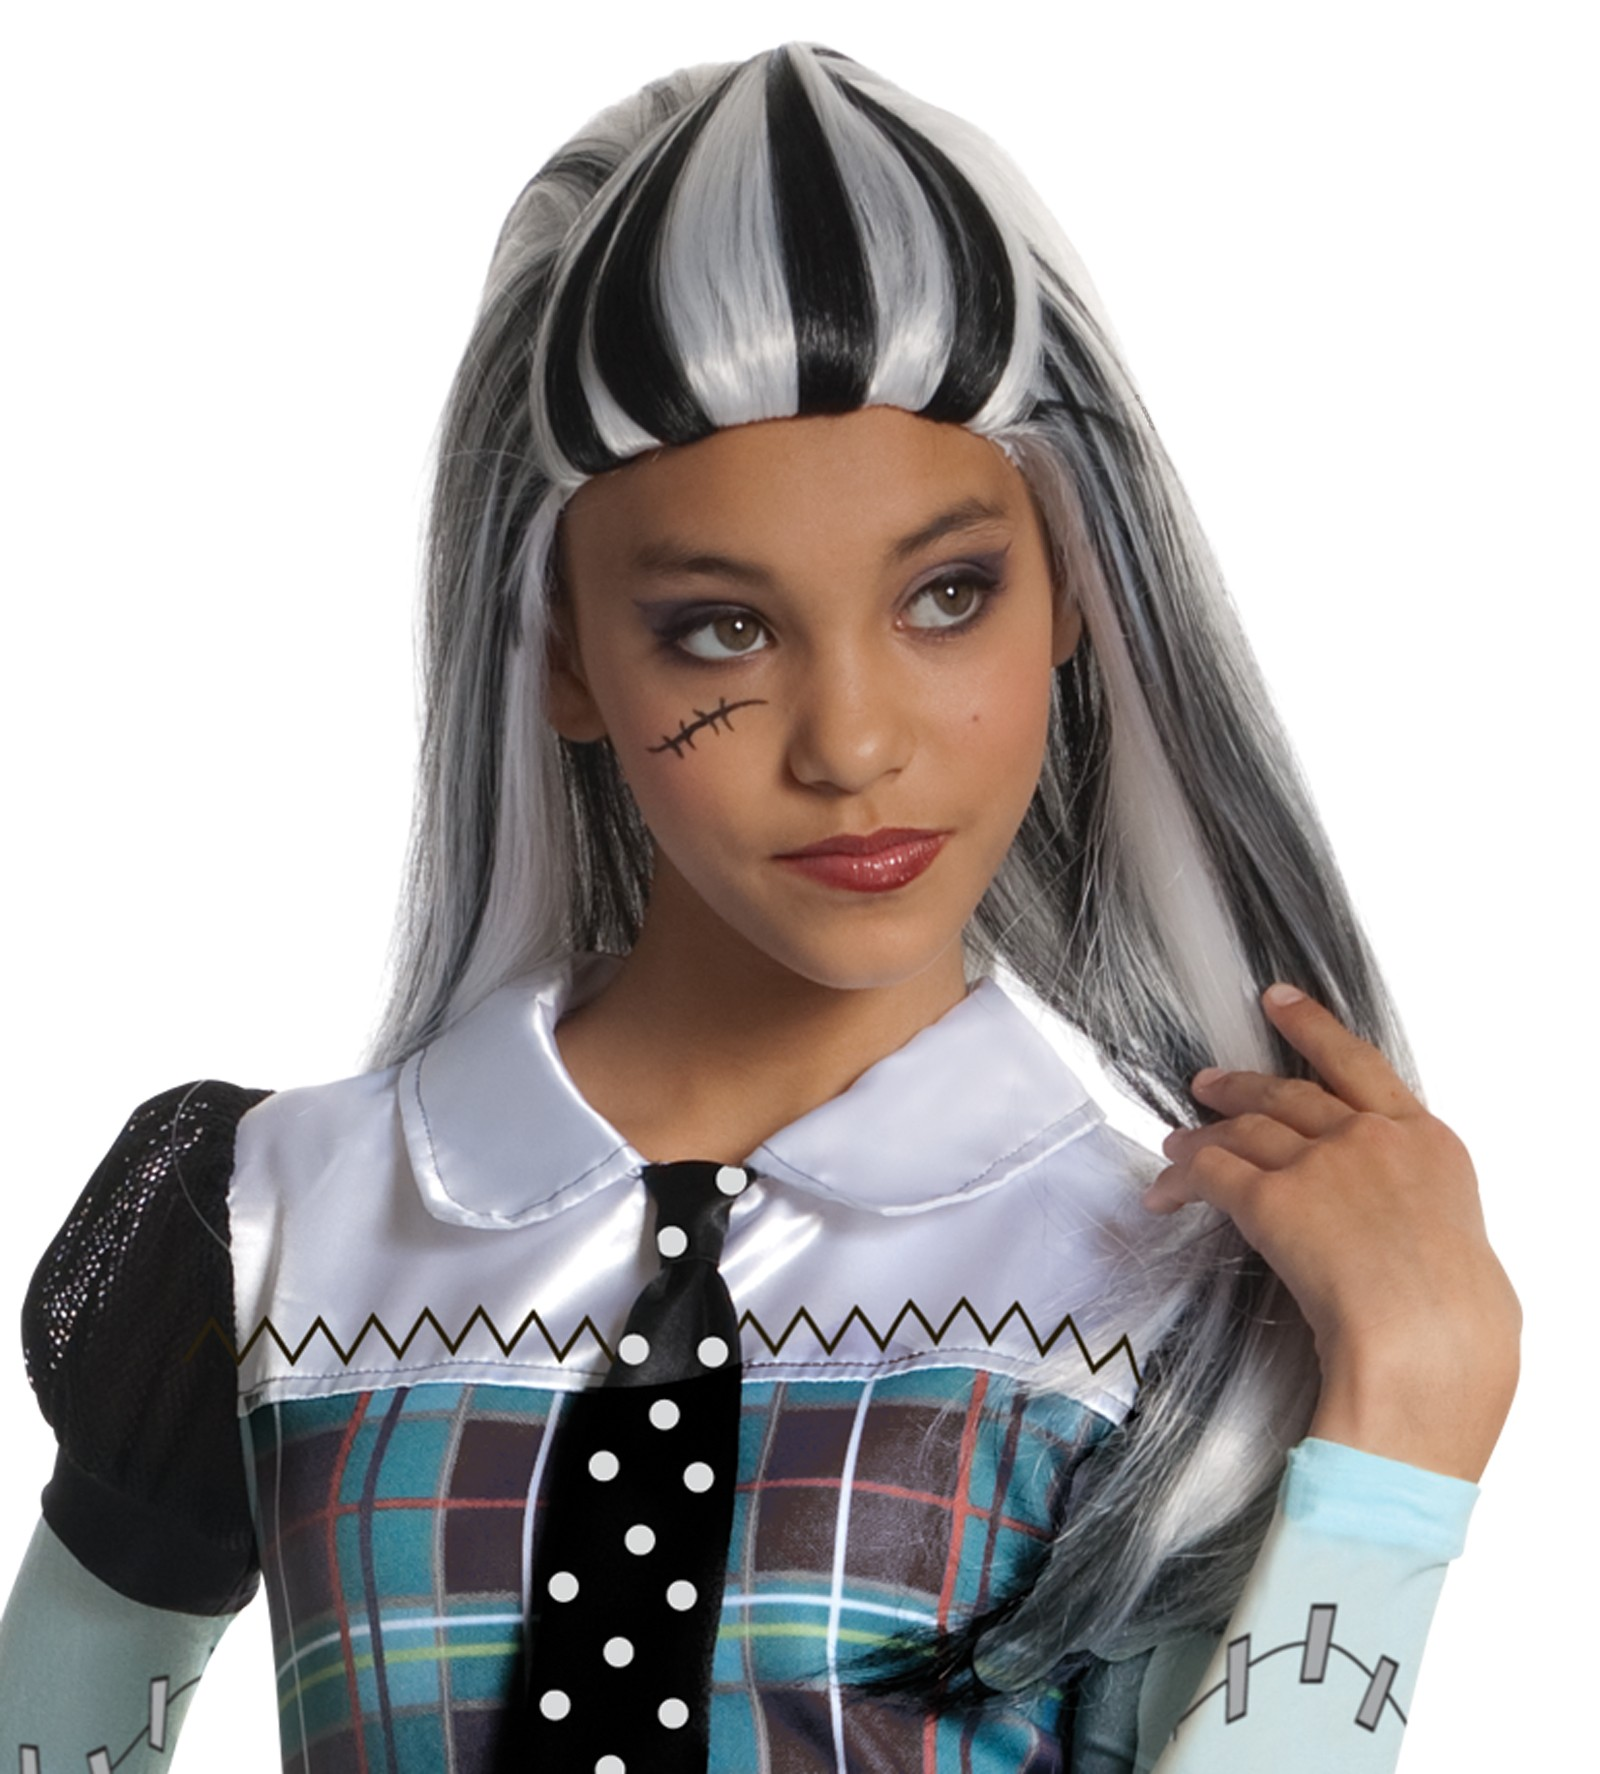 Monster High - Frankie Stein Girls Costume Wig (Child).jpg  sc 1 st  Costumes.com.au : frankie stein monster high costume  - Germanpascual.Com